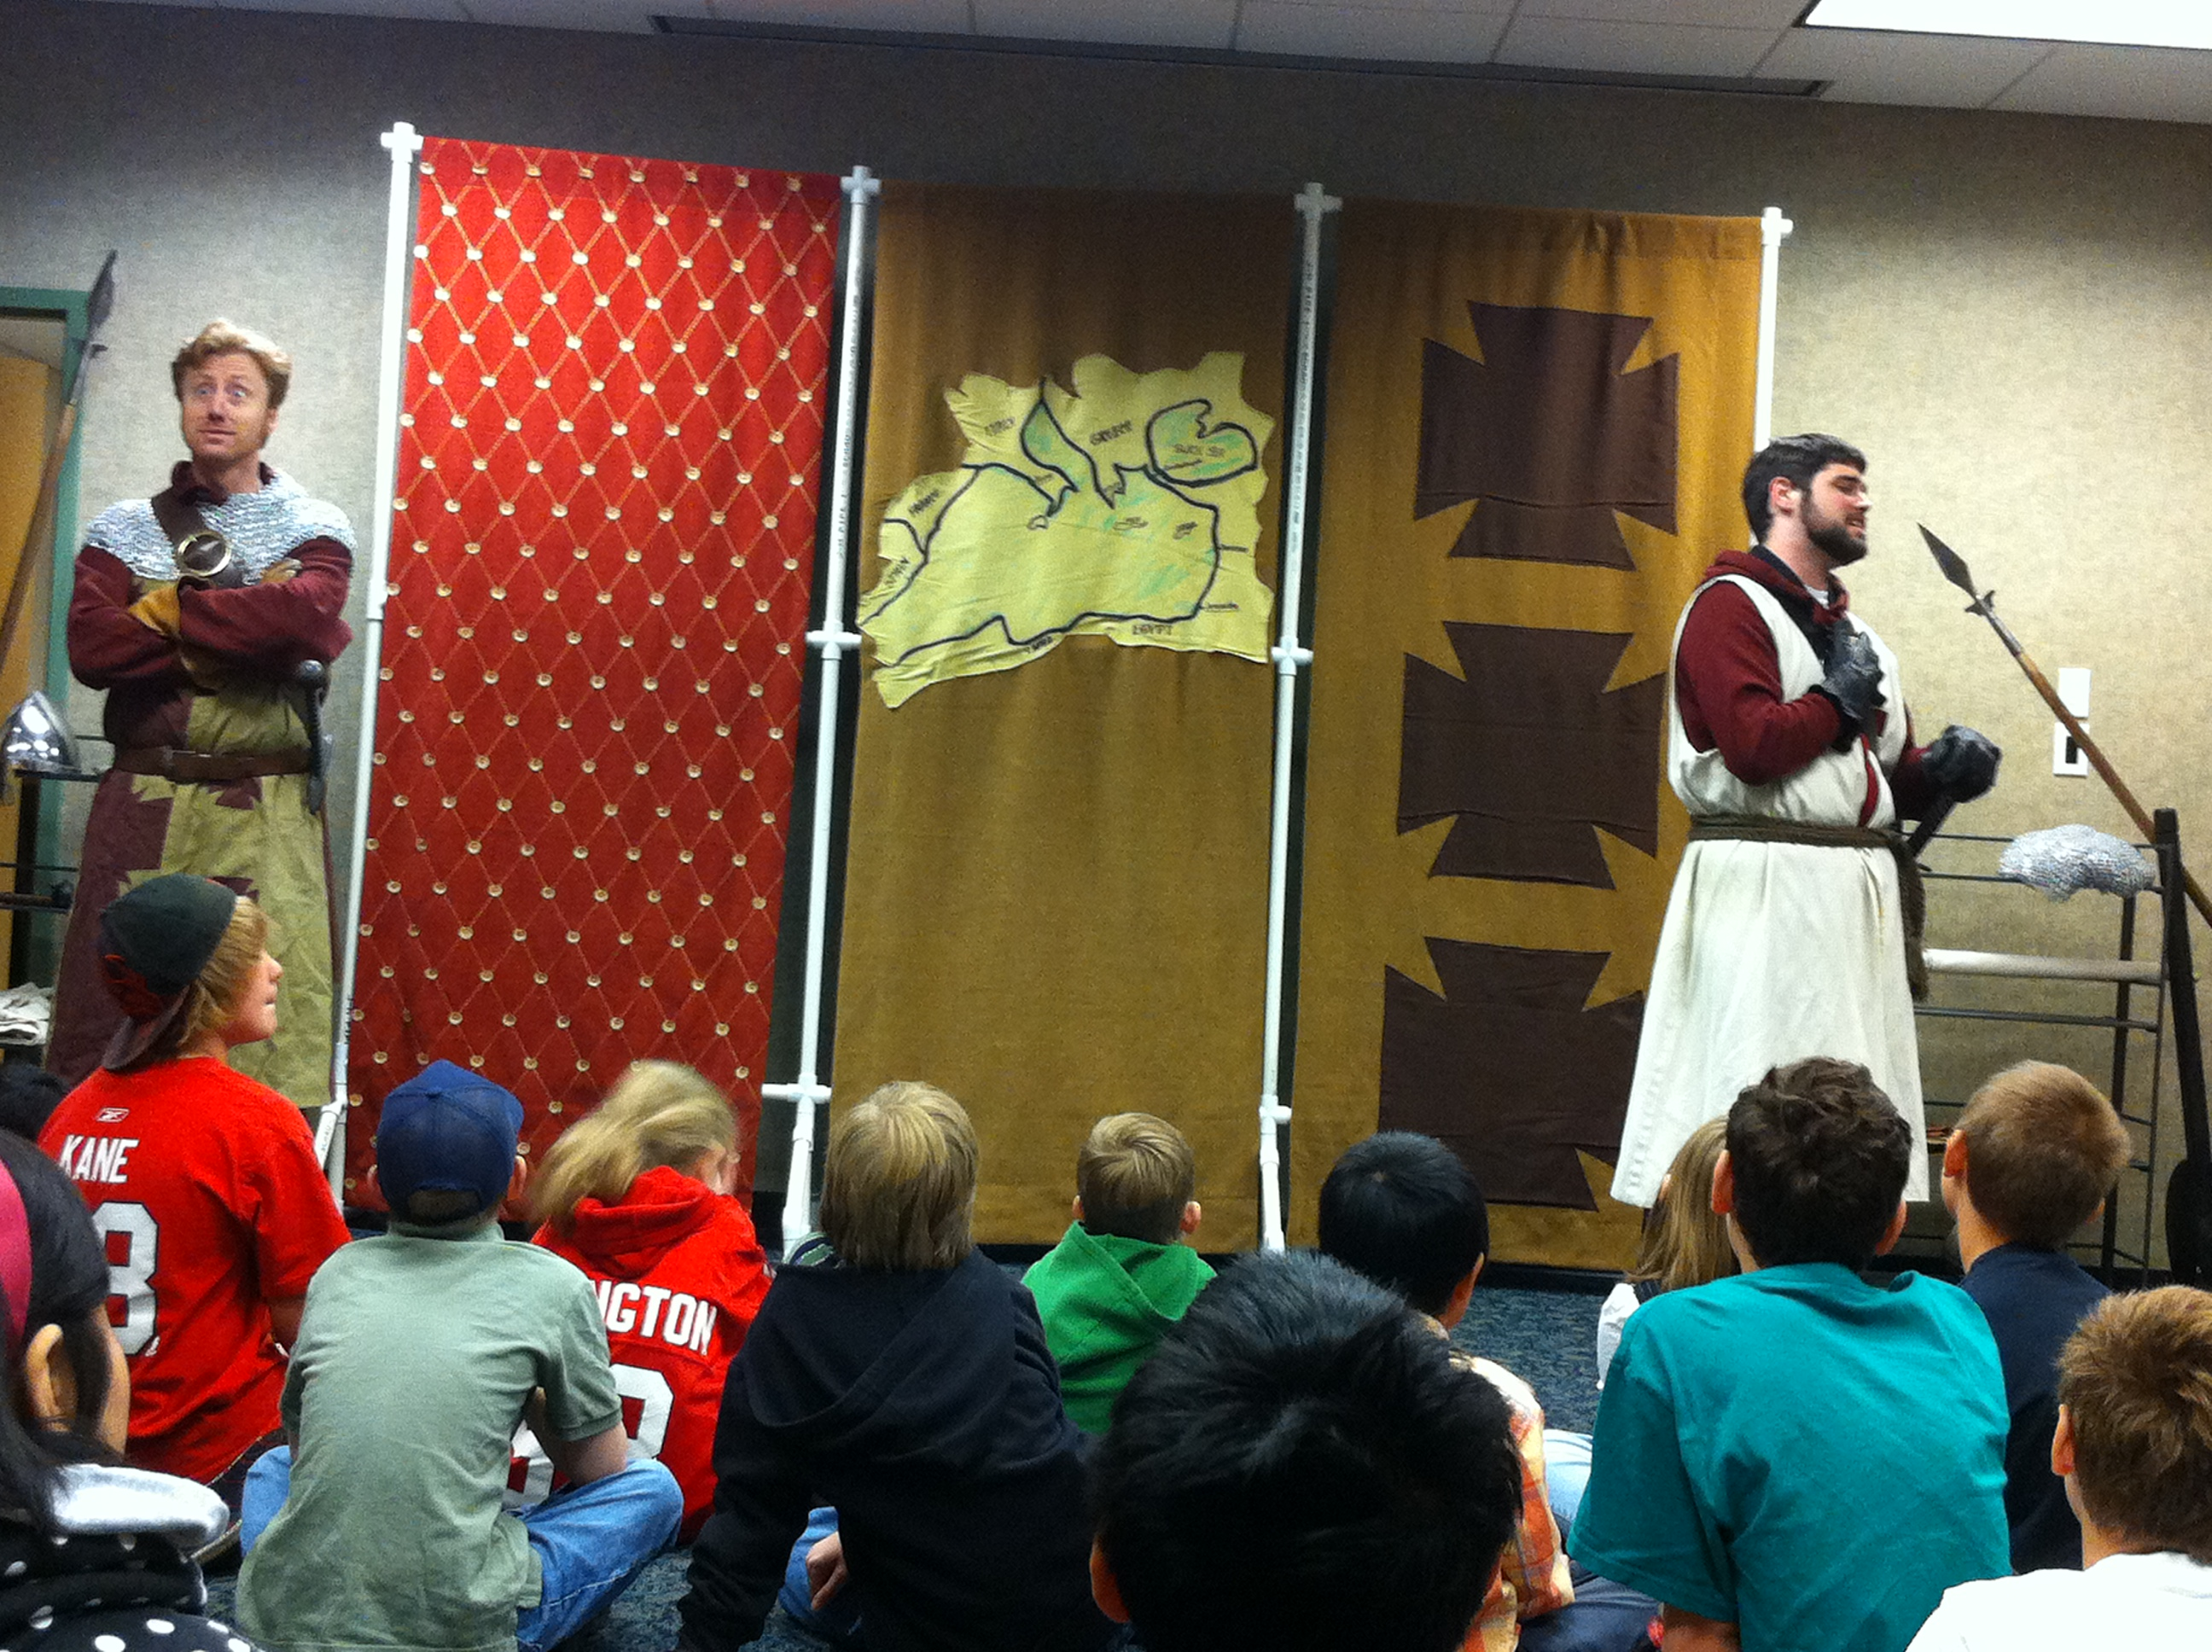 Knights of the Realm at the Algonquin Public Library